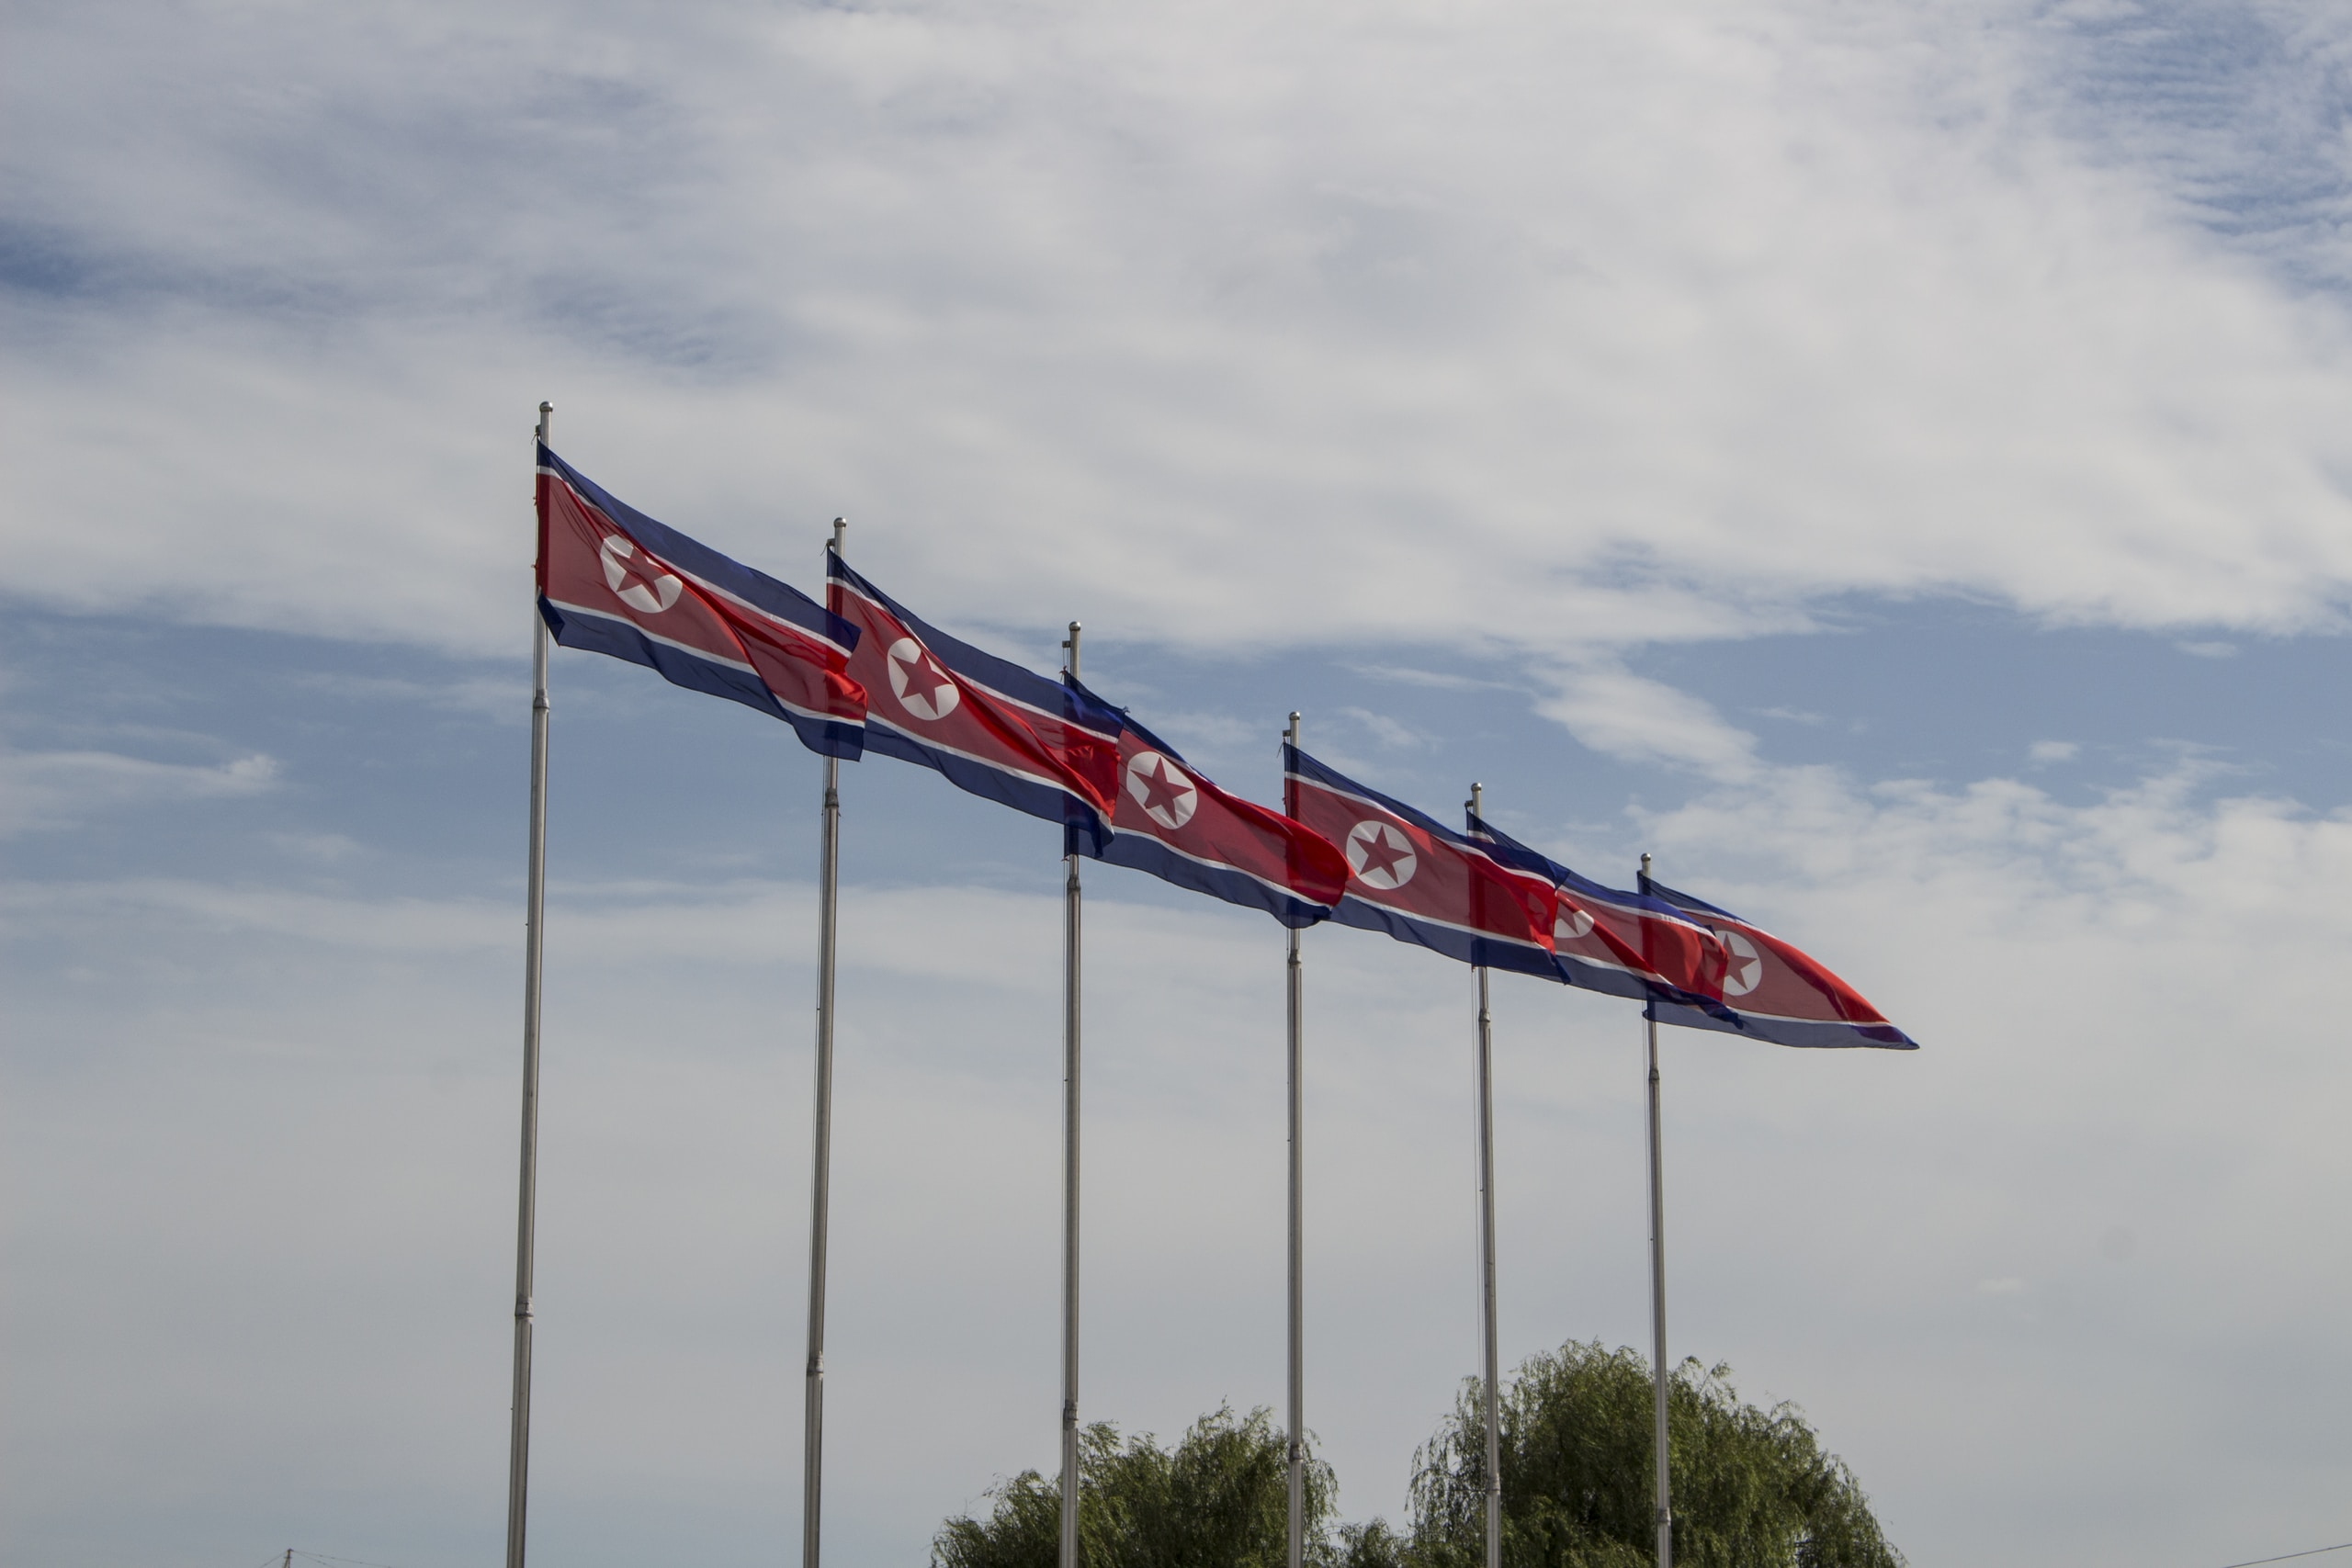 red and white flags on poles